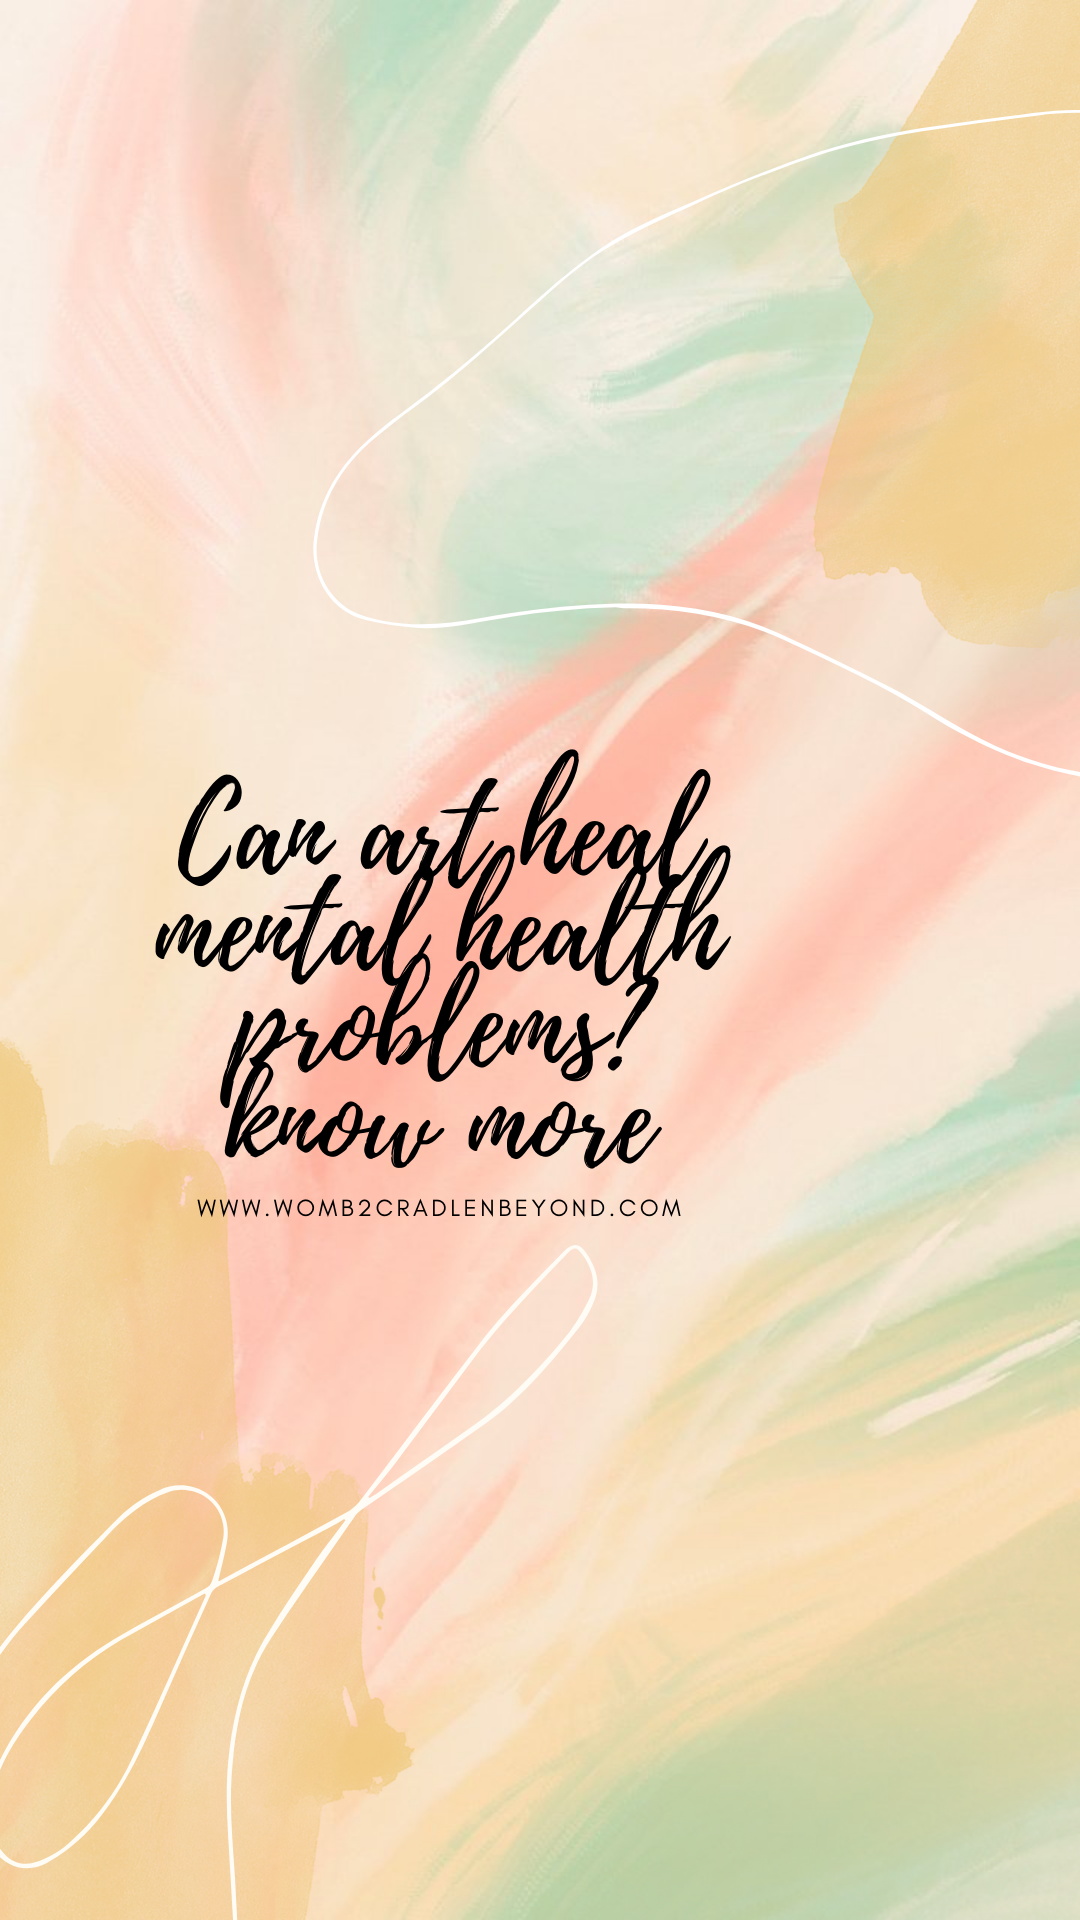 Can art heal mental health problems? Know how